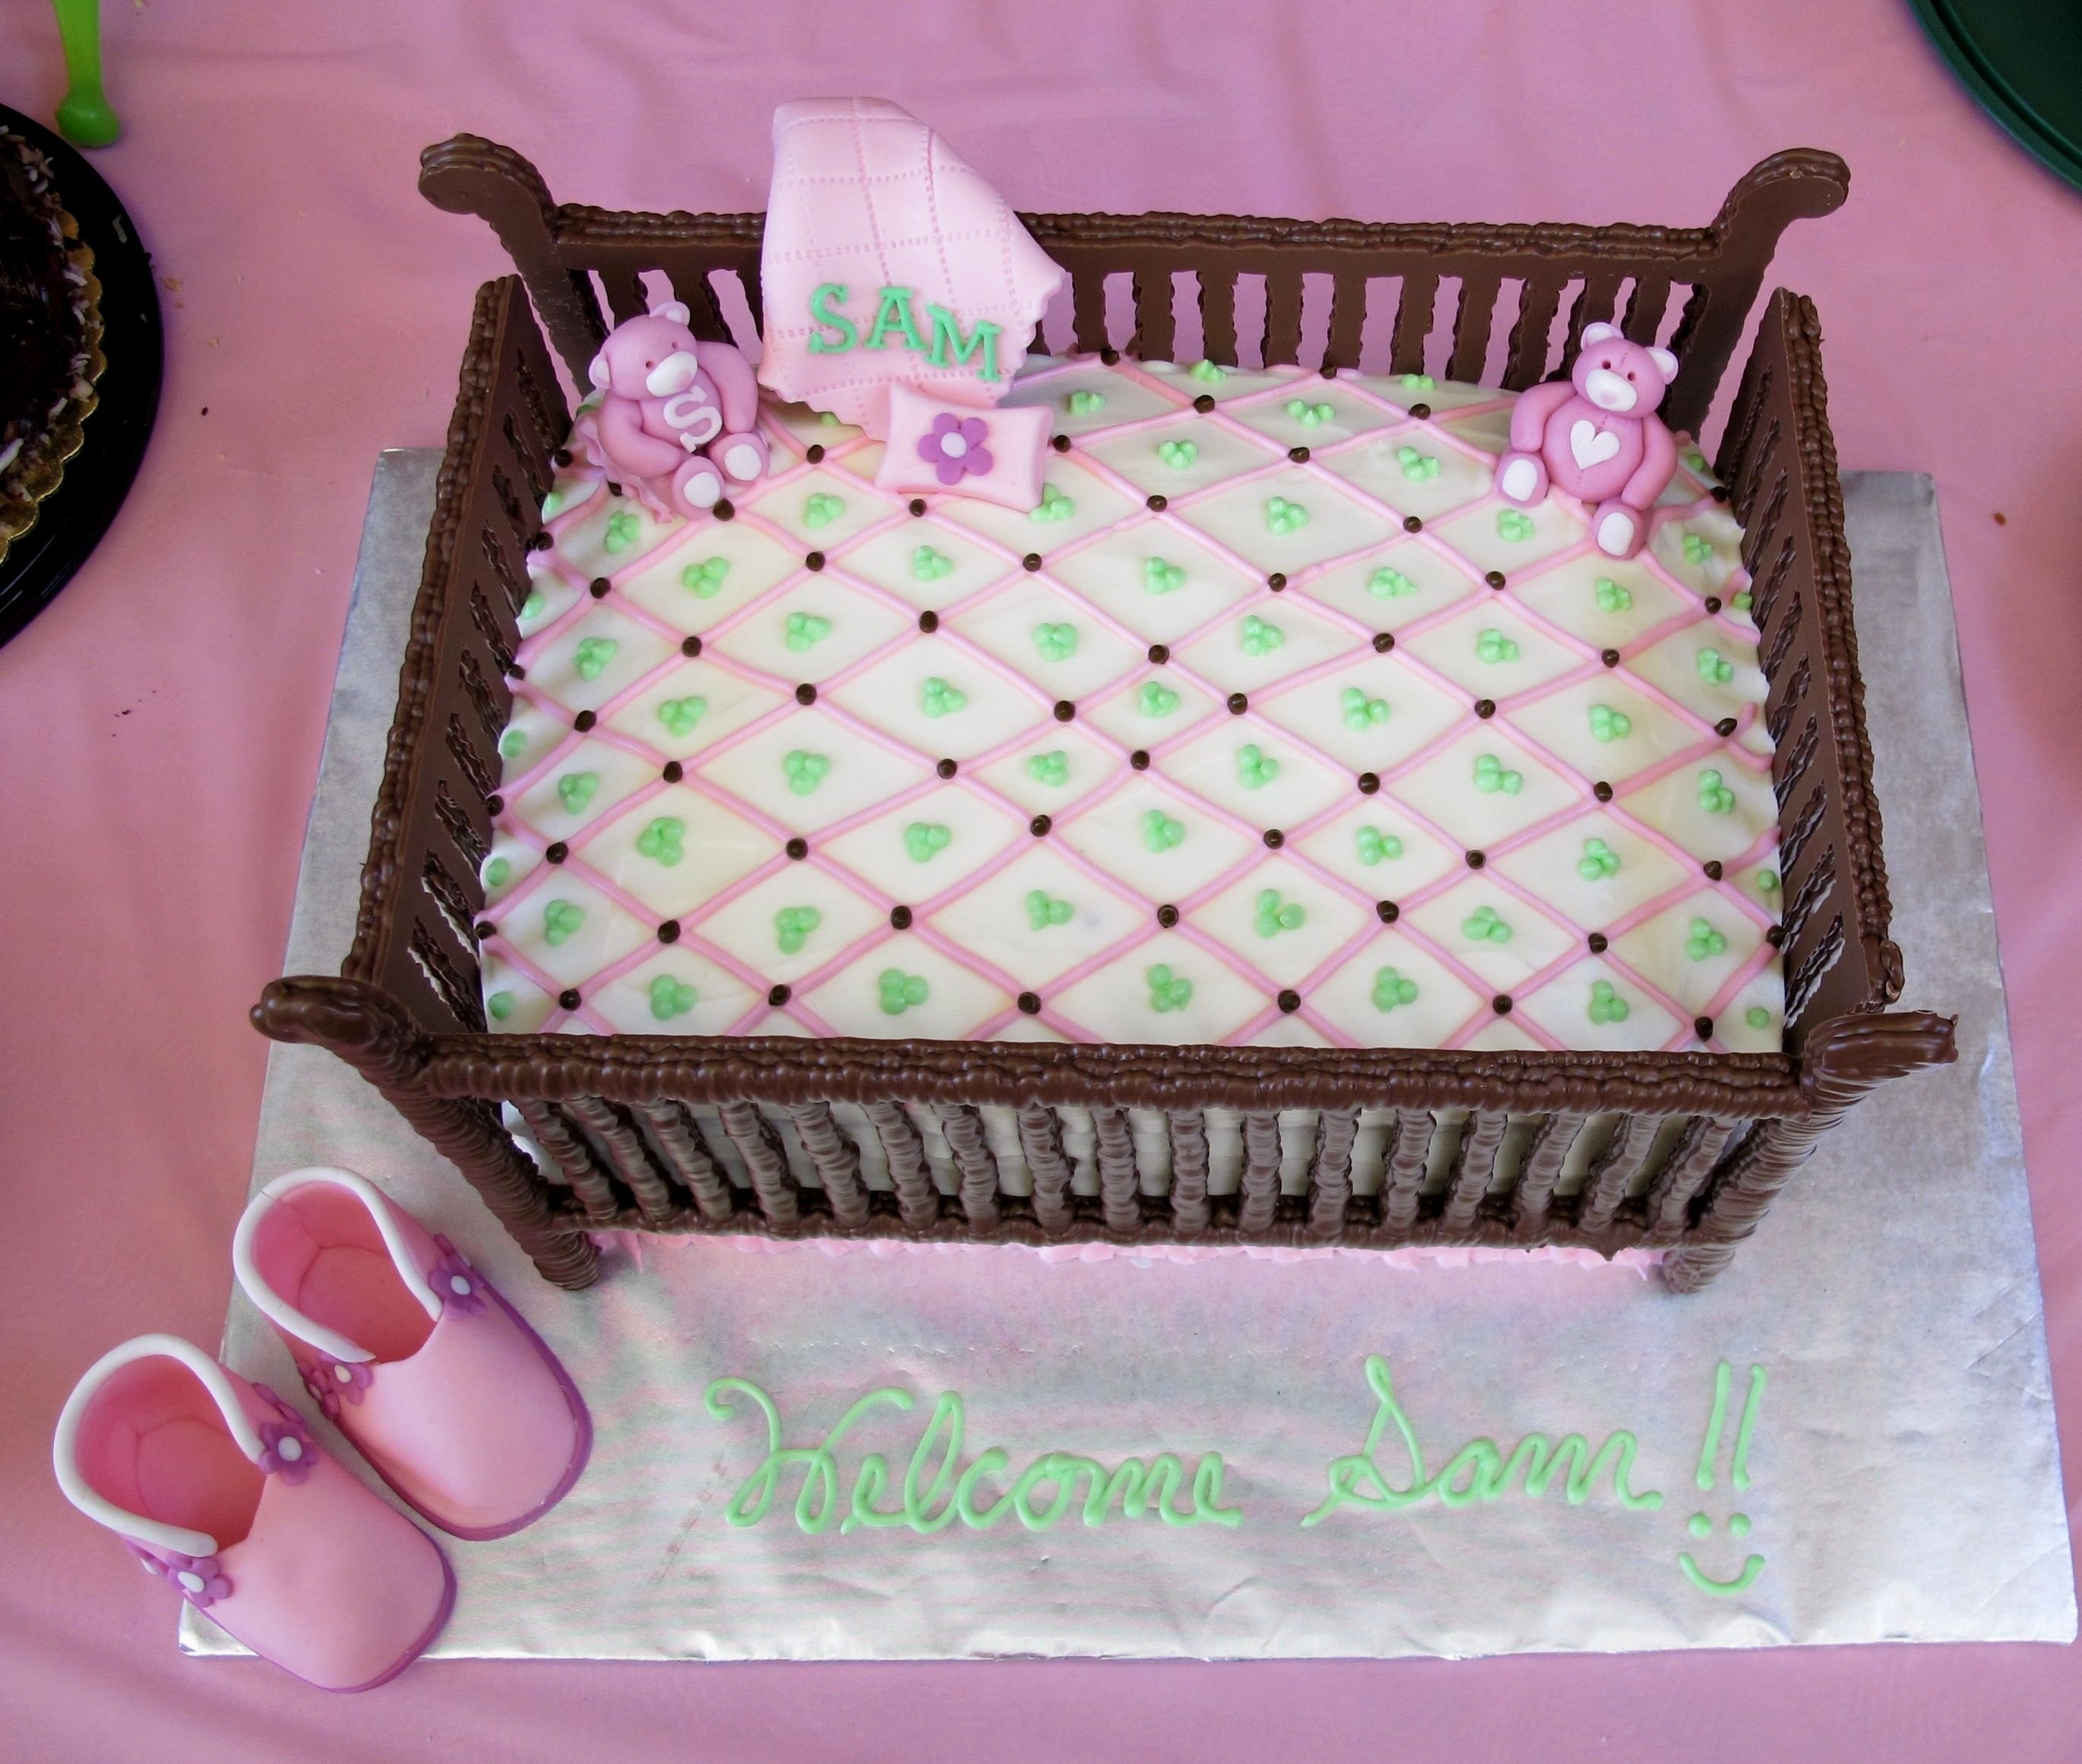 10 Stunning Baby Shower Cake Ideas For A Girl terrific baby shower sheet cakes cake ideas for a girl decorating of 2021